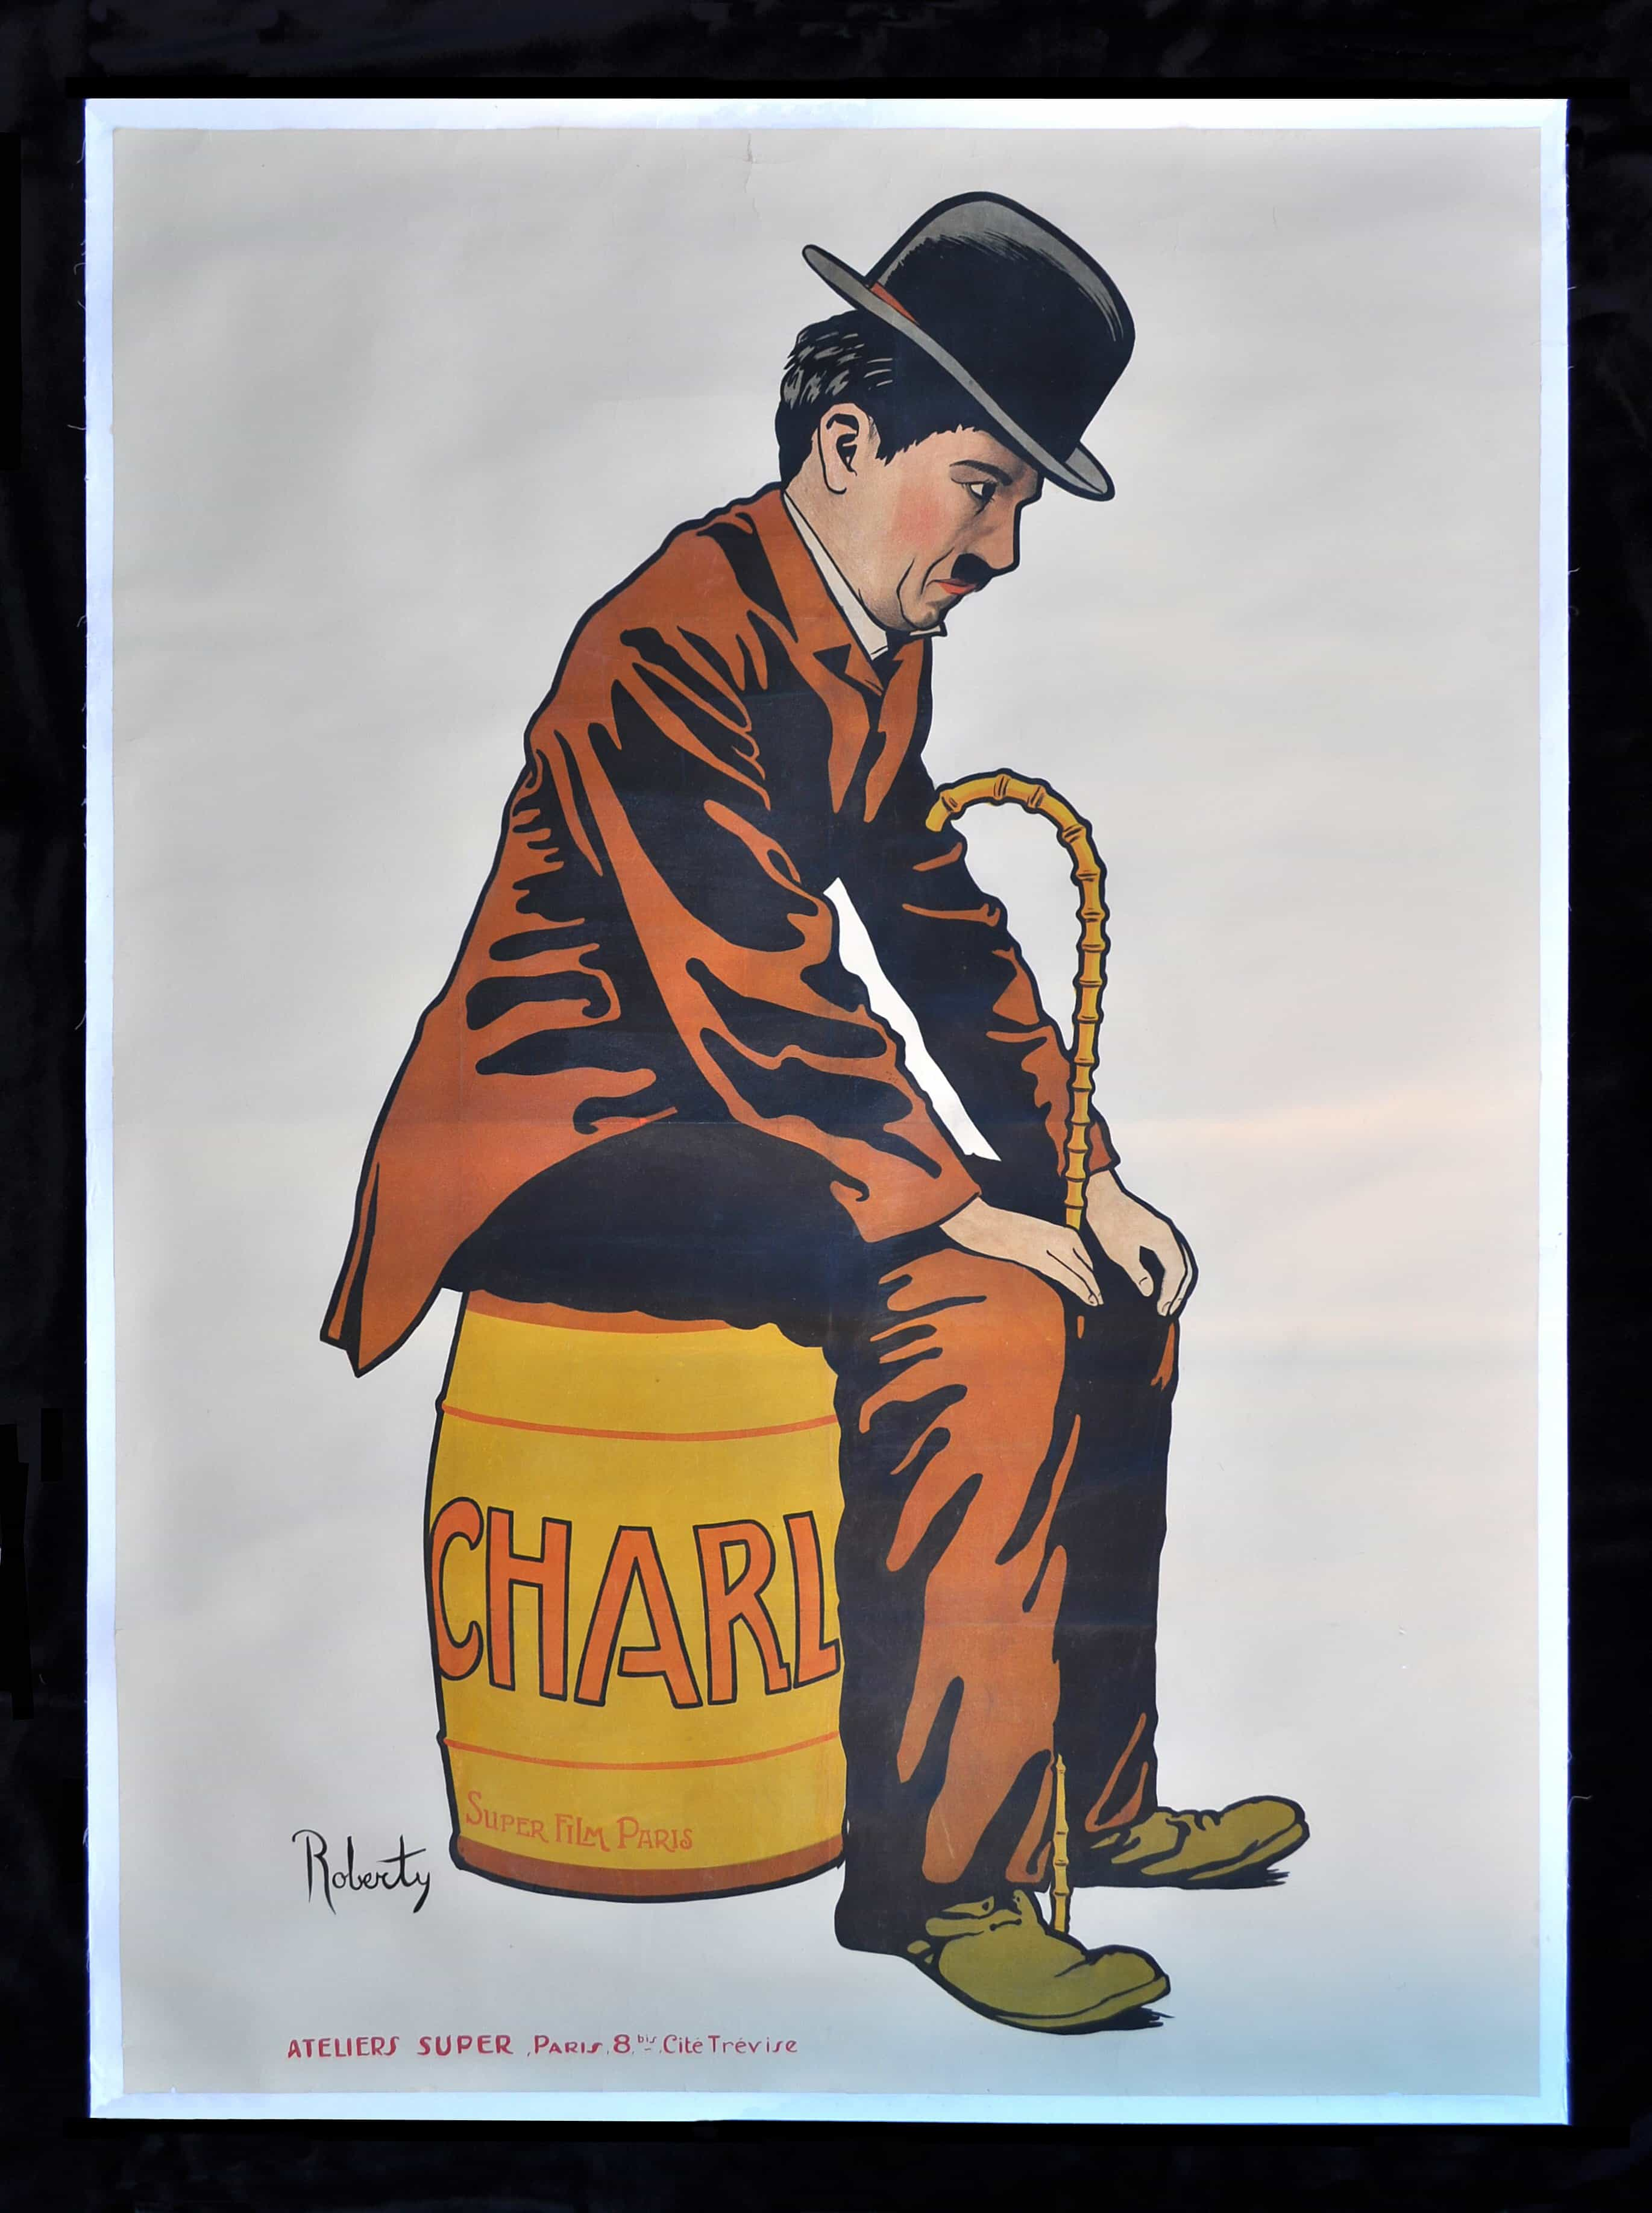 """""""Charlot"""" Charlie Chaplin Poster by Roberty, 1917"""